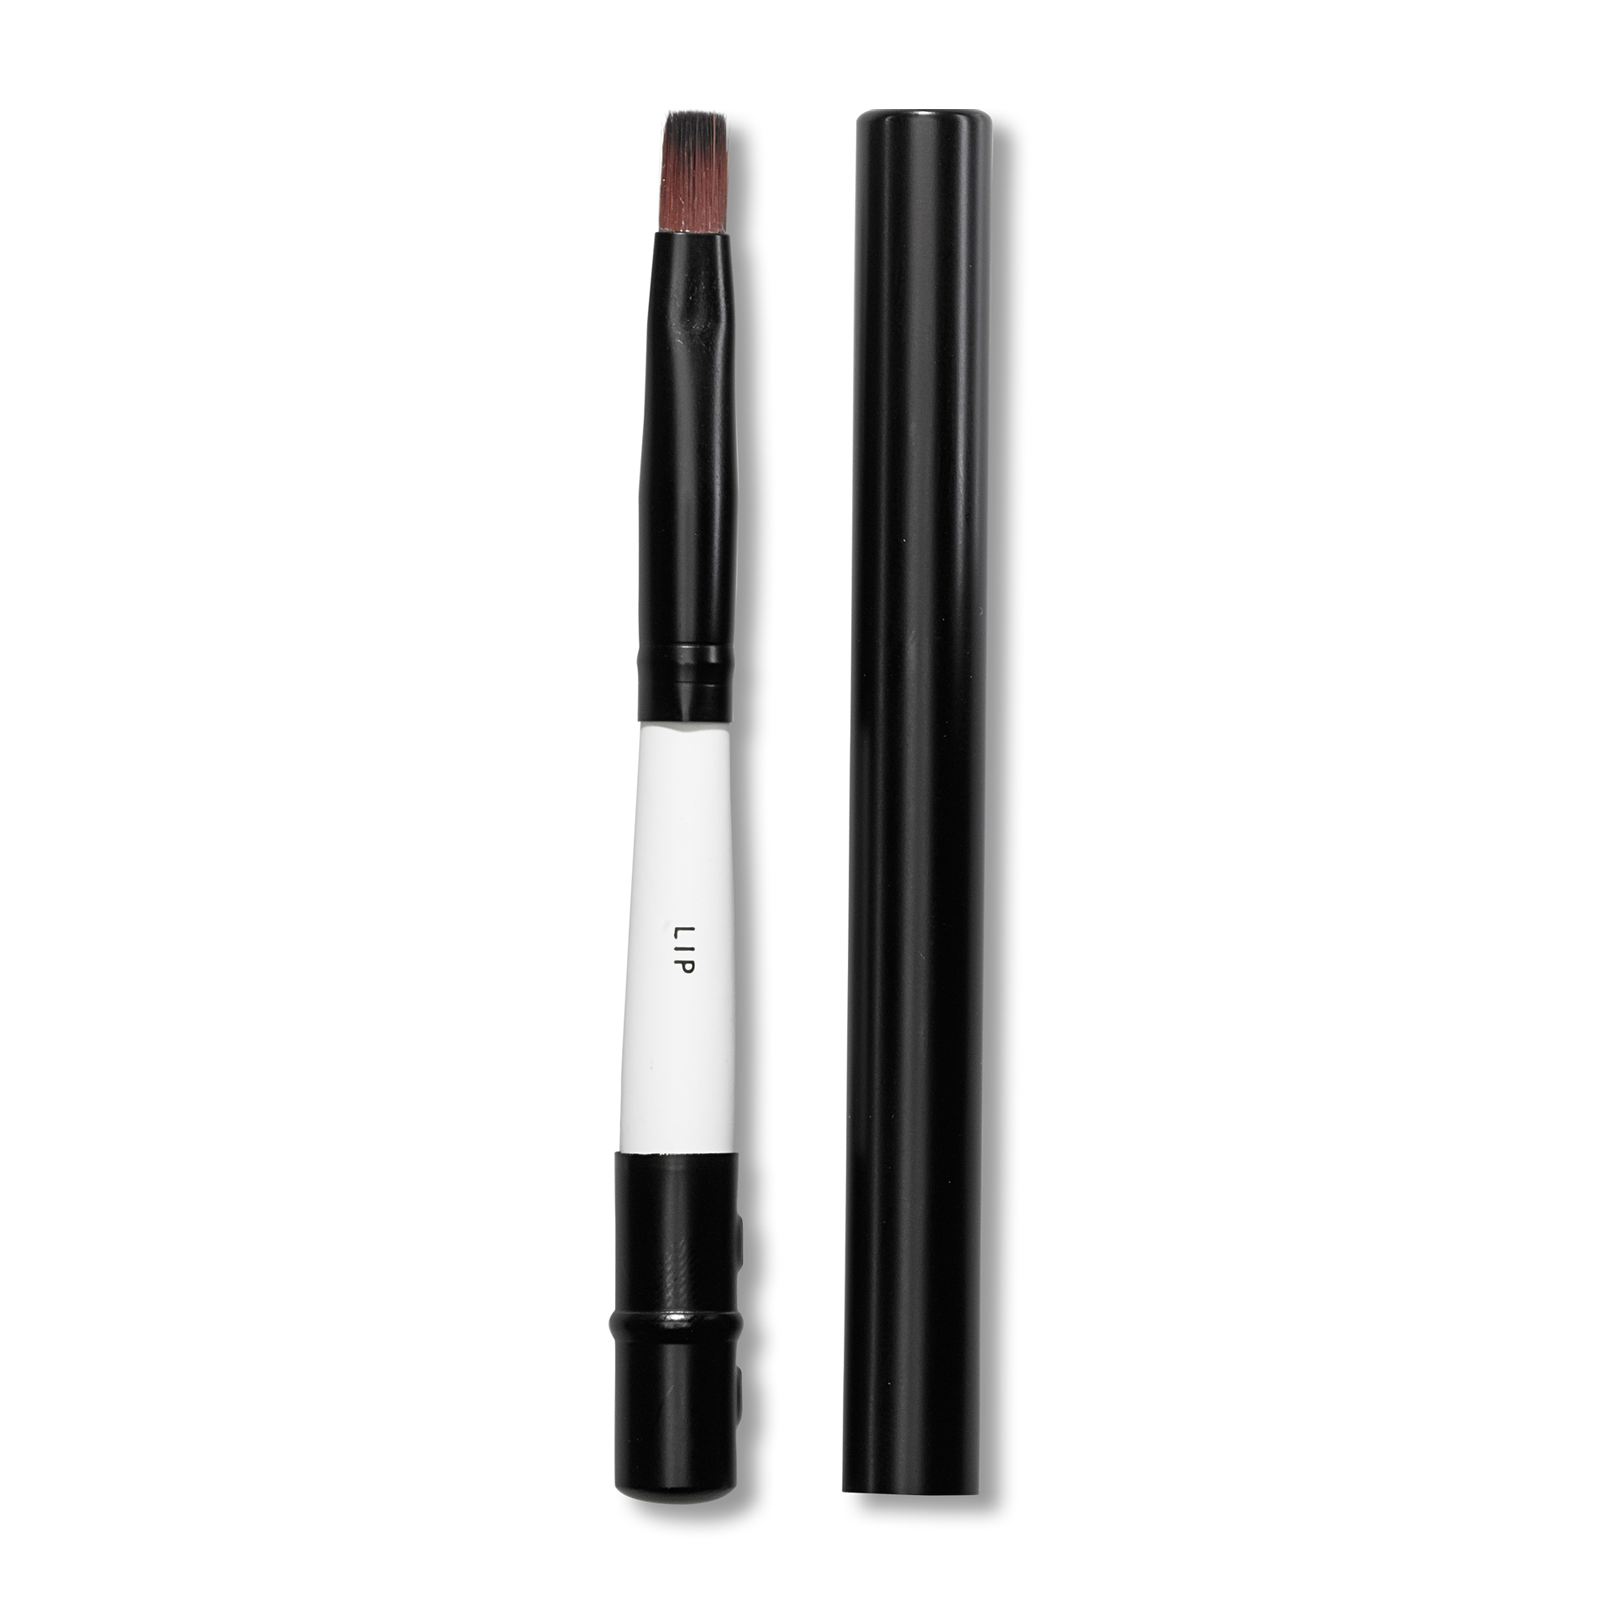 Lily Lolo Lip Brush Lip brush, Lily lolo, Lips